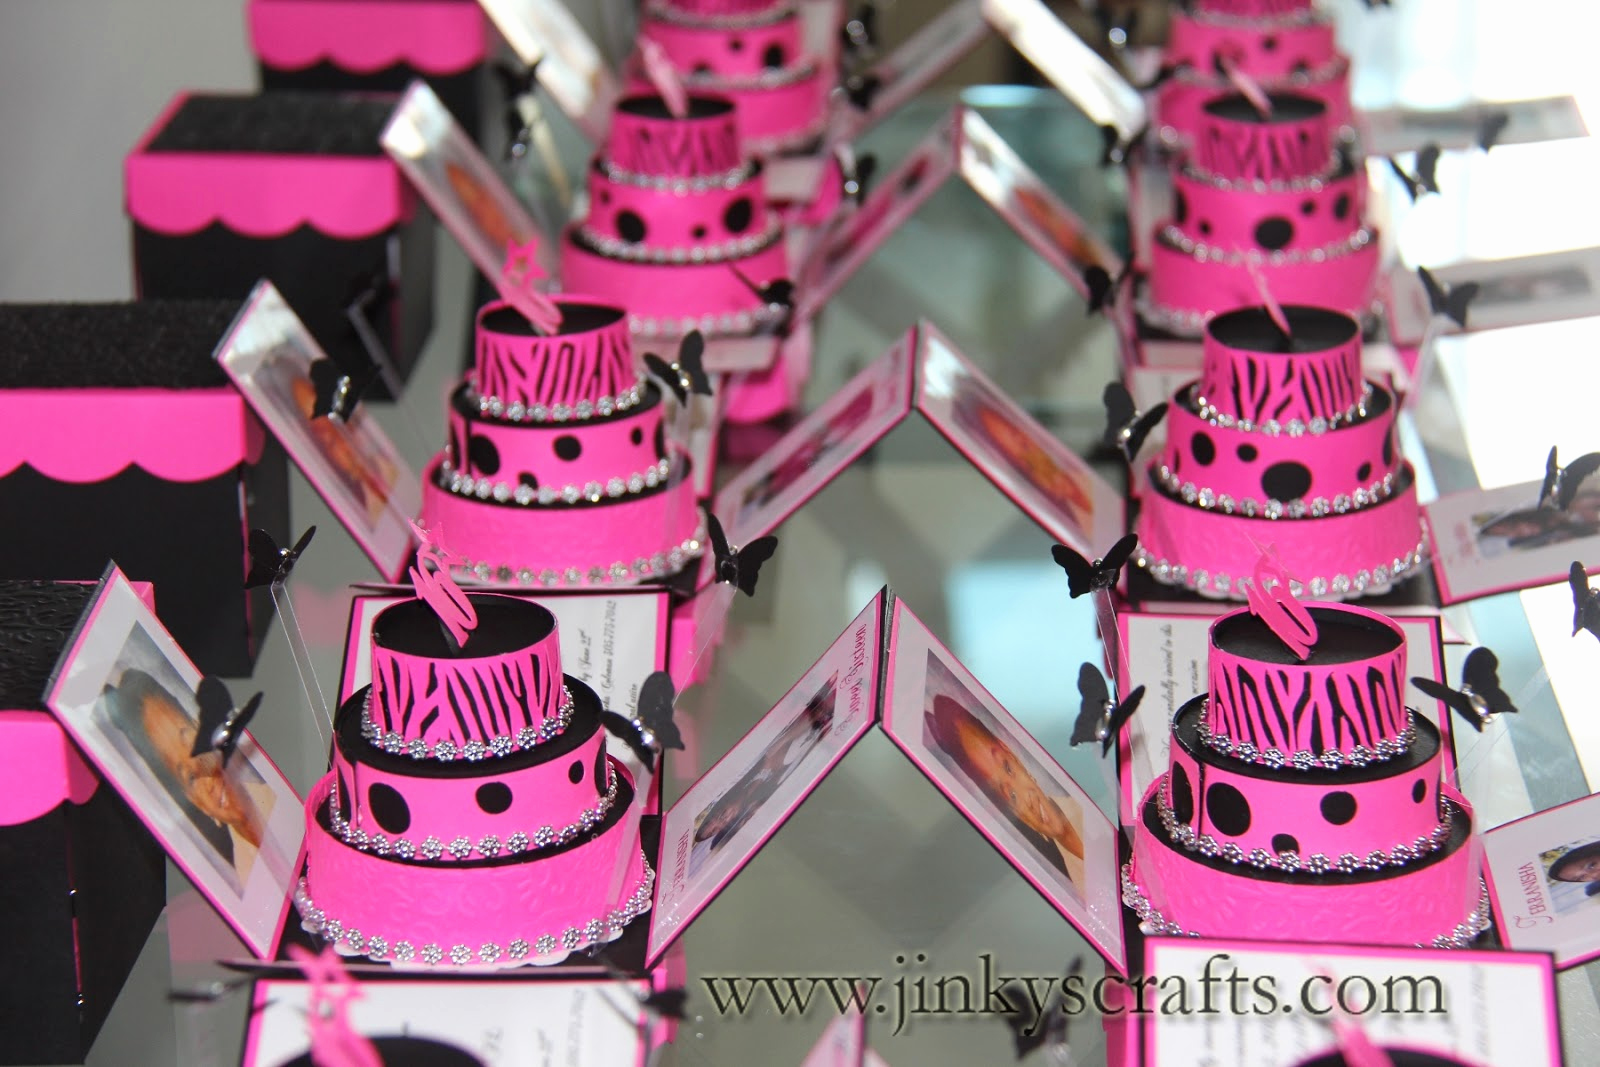 Sweet 16 Invitation Ideas Beautiful Jinky S Crafts & Designs Hot Pink Zebra Print Cakes Invites